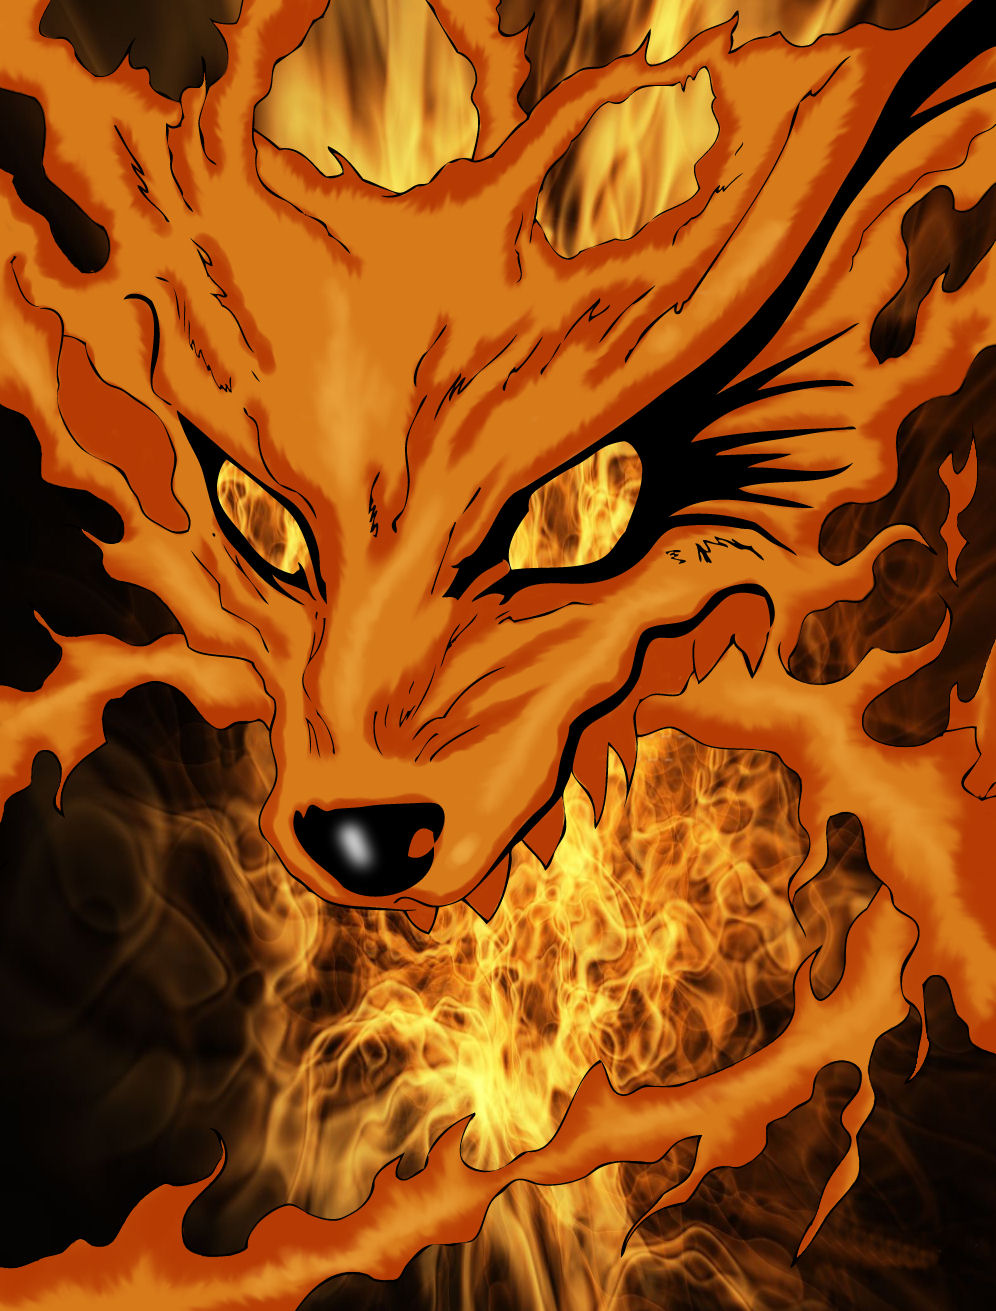 39 Nine Tails Hd Wallpaper On Wallpapersafari